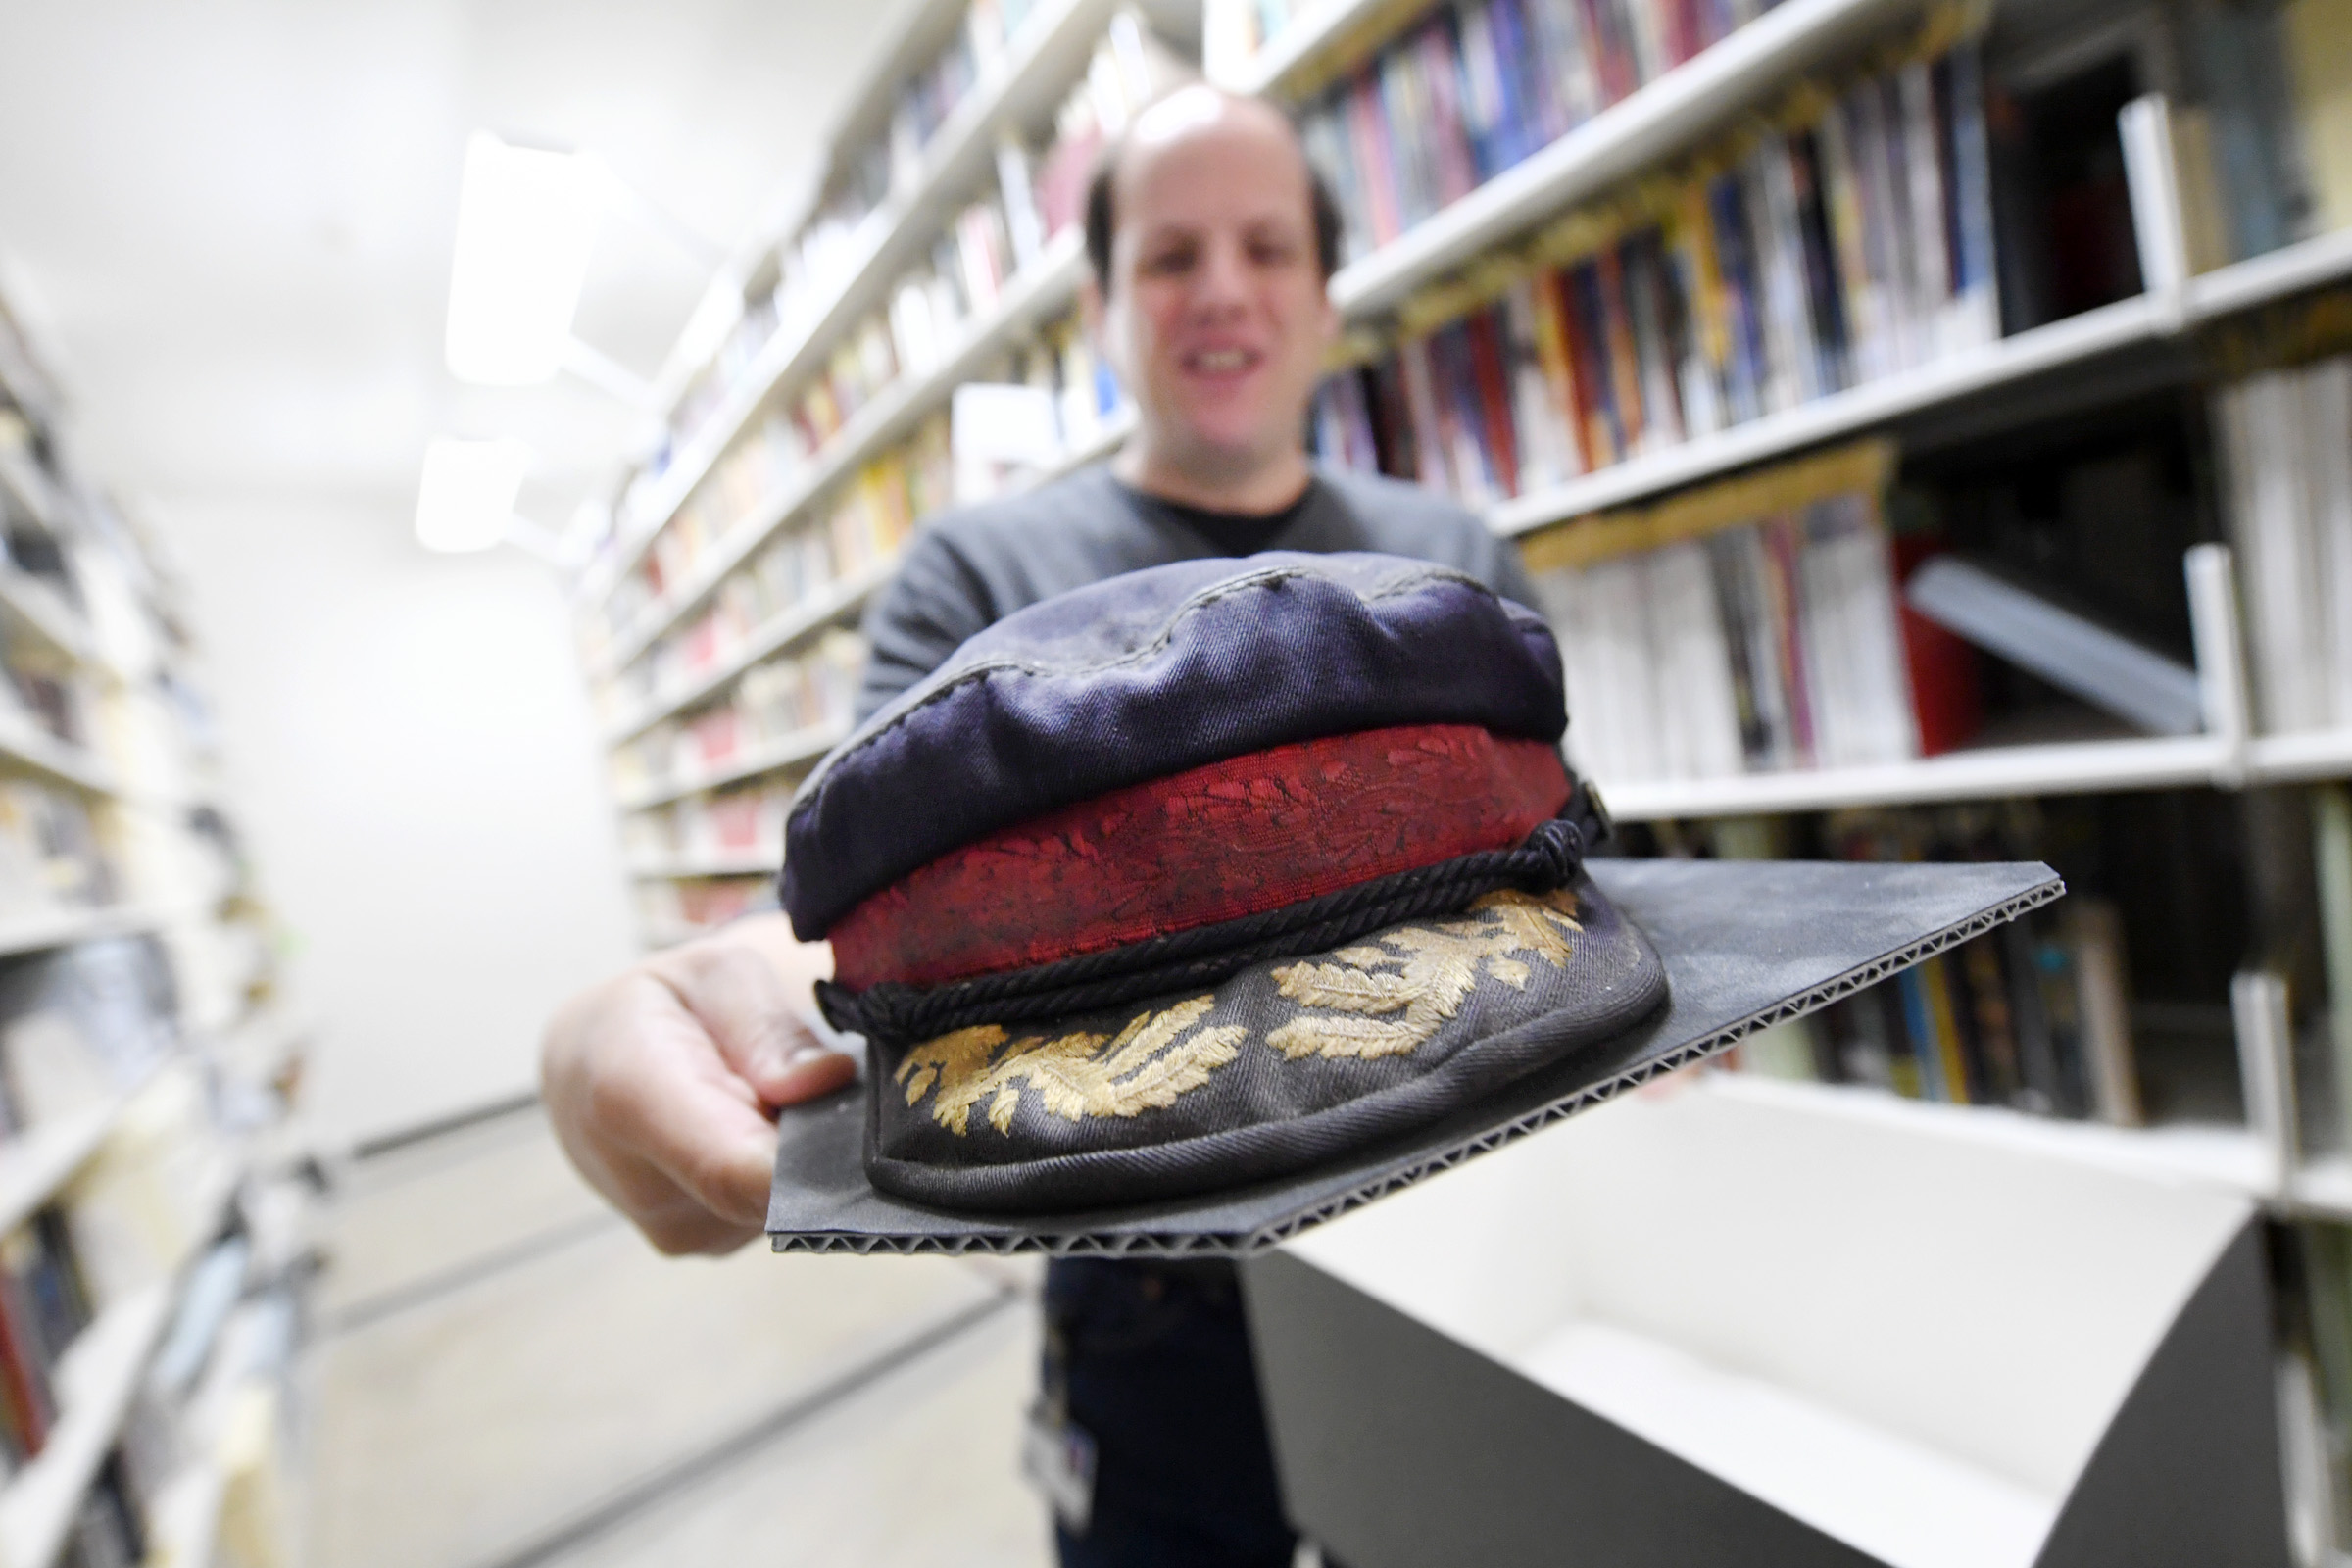 Science Fiction and Fantasy Curator Jeremy Brett holds one of author George R.R. Martin's signature fisherman caps, which is part of the collection at Texas A&M University's Cushing Memorial Library and Archives in College Station, Texas. (Laura McKenzie/The Eagle)